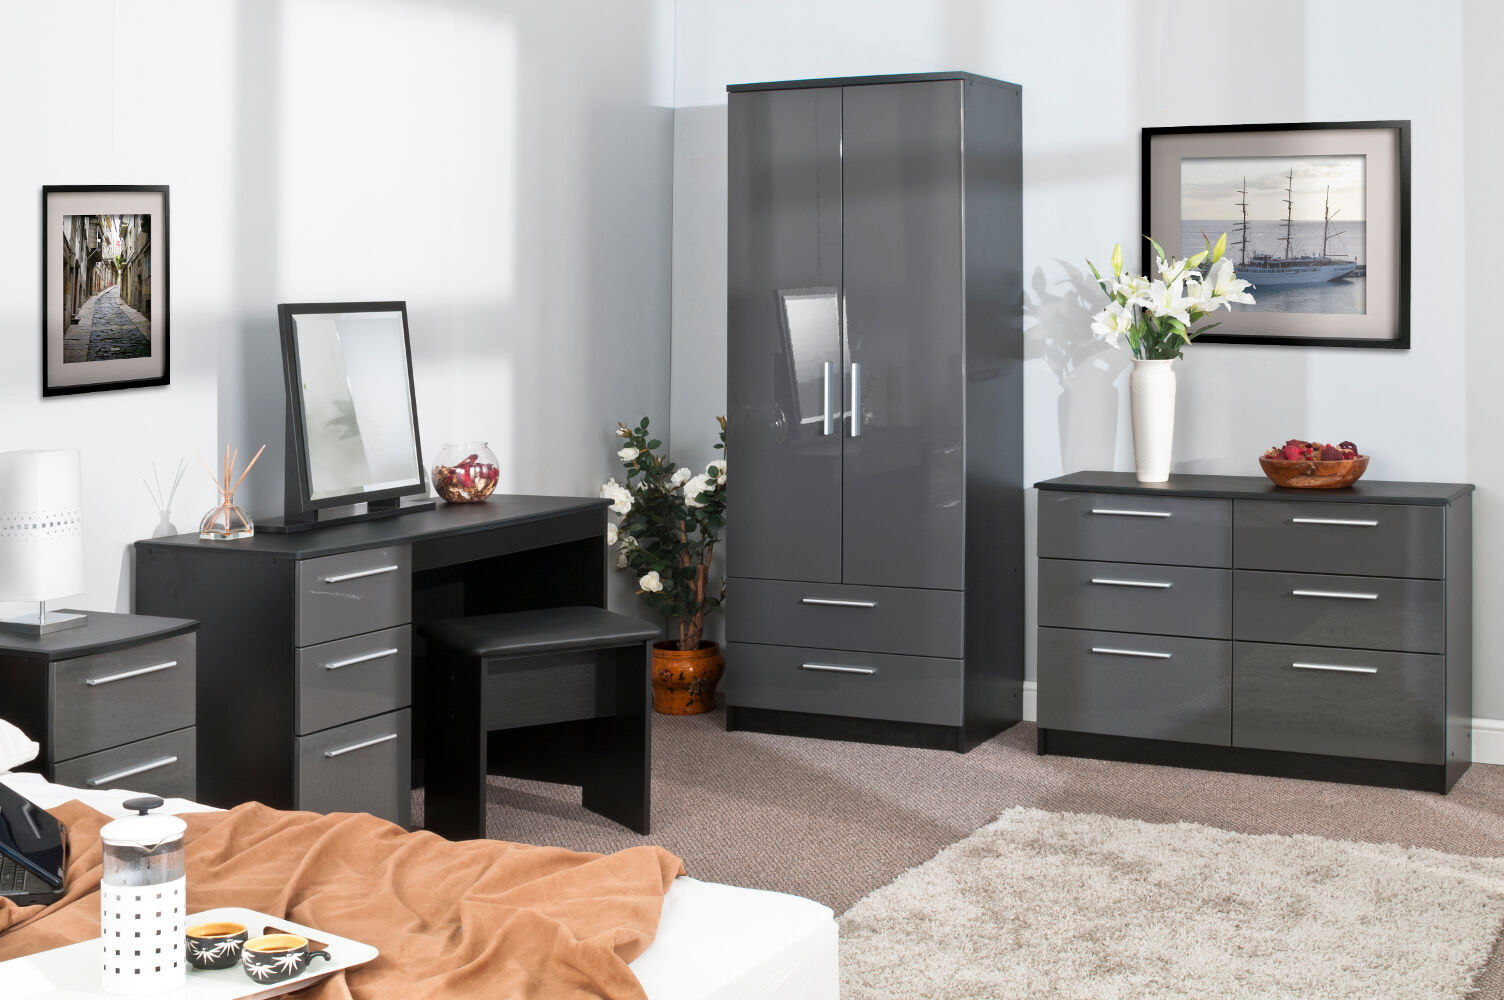 bedroom furniture high gloss grey on black wardrobe chest bedside drawers ebay. Black Bedroom Furniture Sets. Home Design Ideas